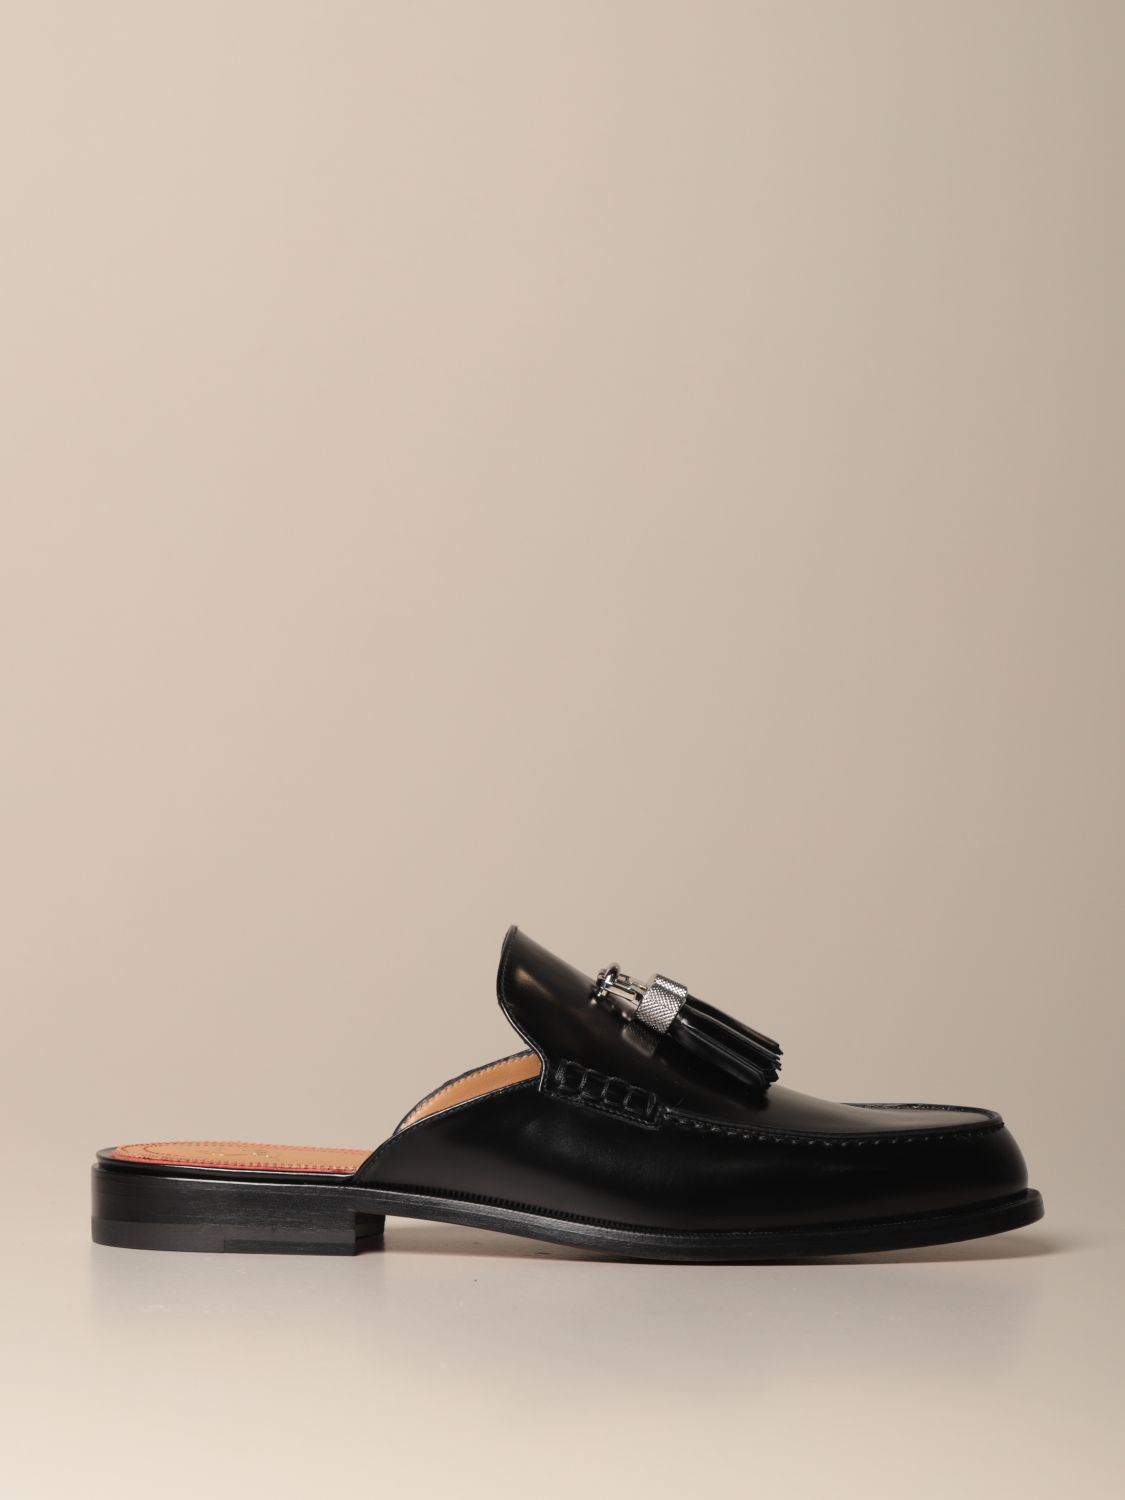 Loafers Christian Louboutin: Rivaslide Christian Louboutin loafer in leather with tassels black 1